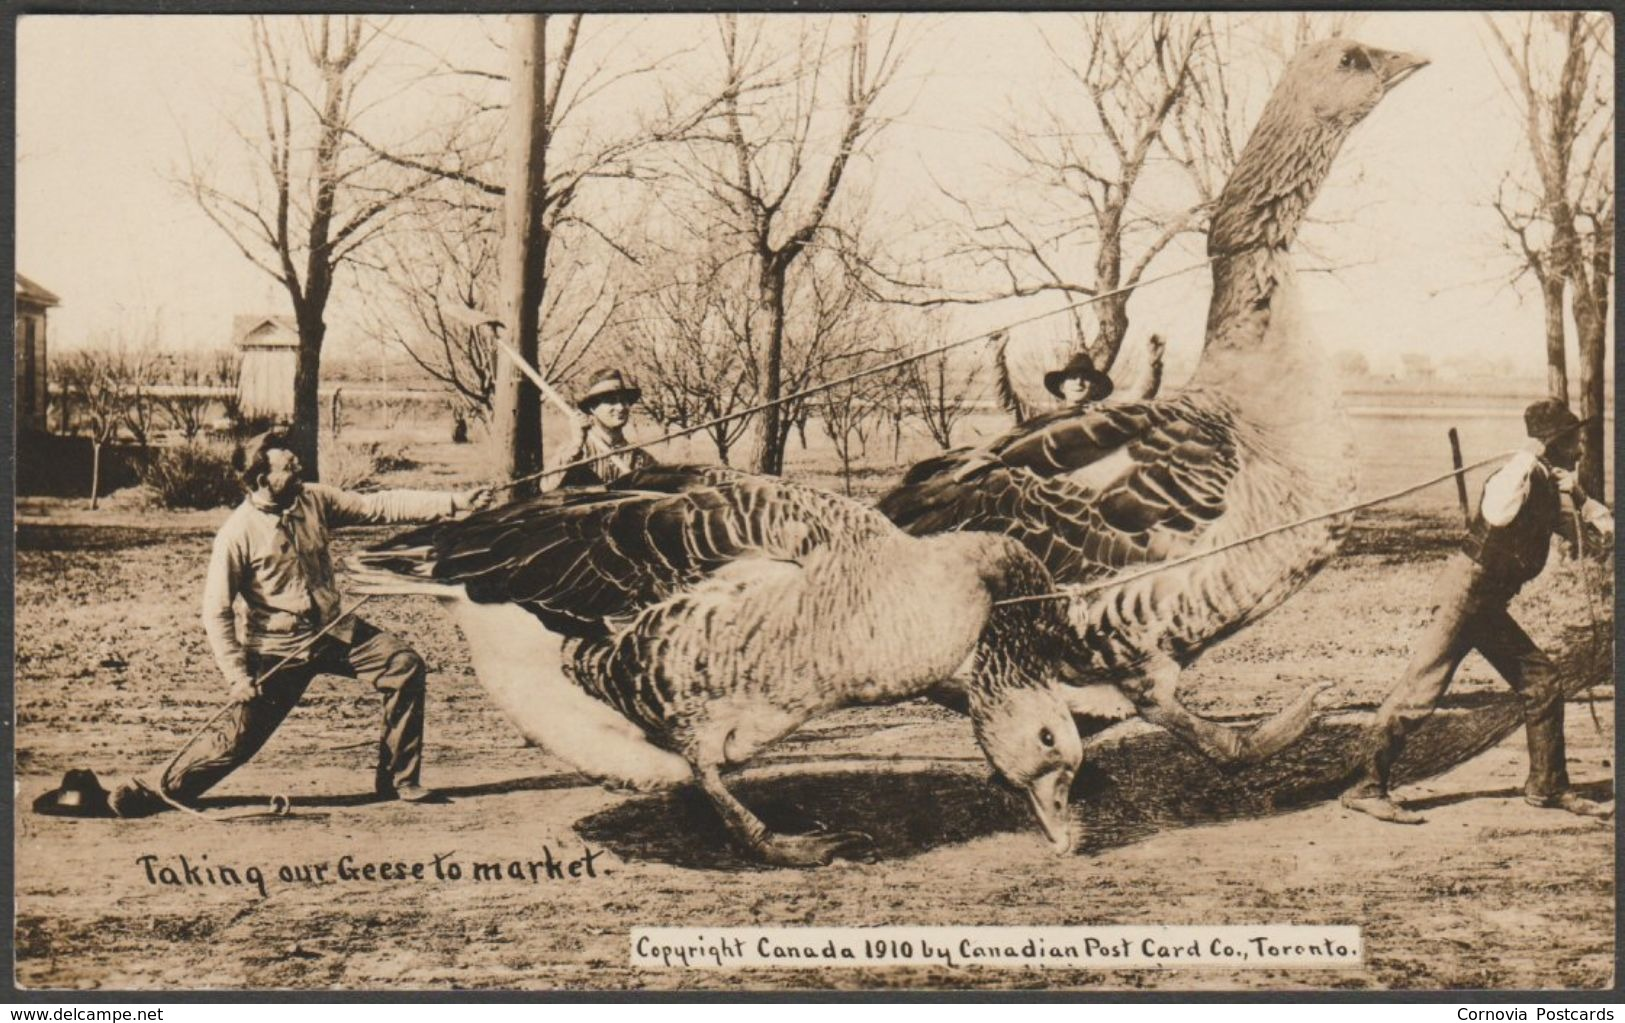 Exaggeration, Taking Our Geese To Market, Canada, 1910 - Canadian Post Card Co RPPC - Unclassified